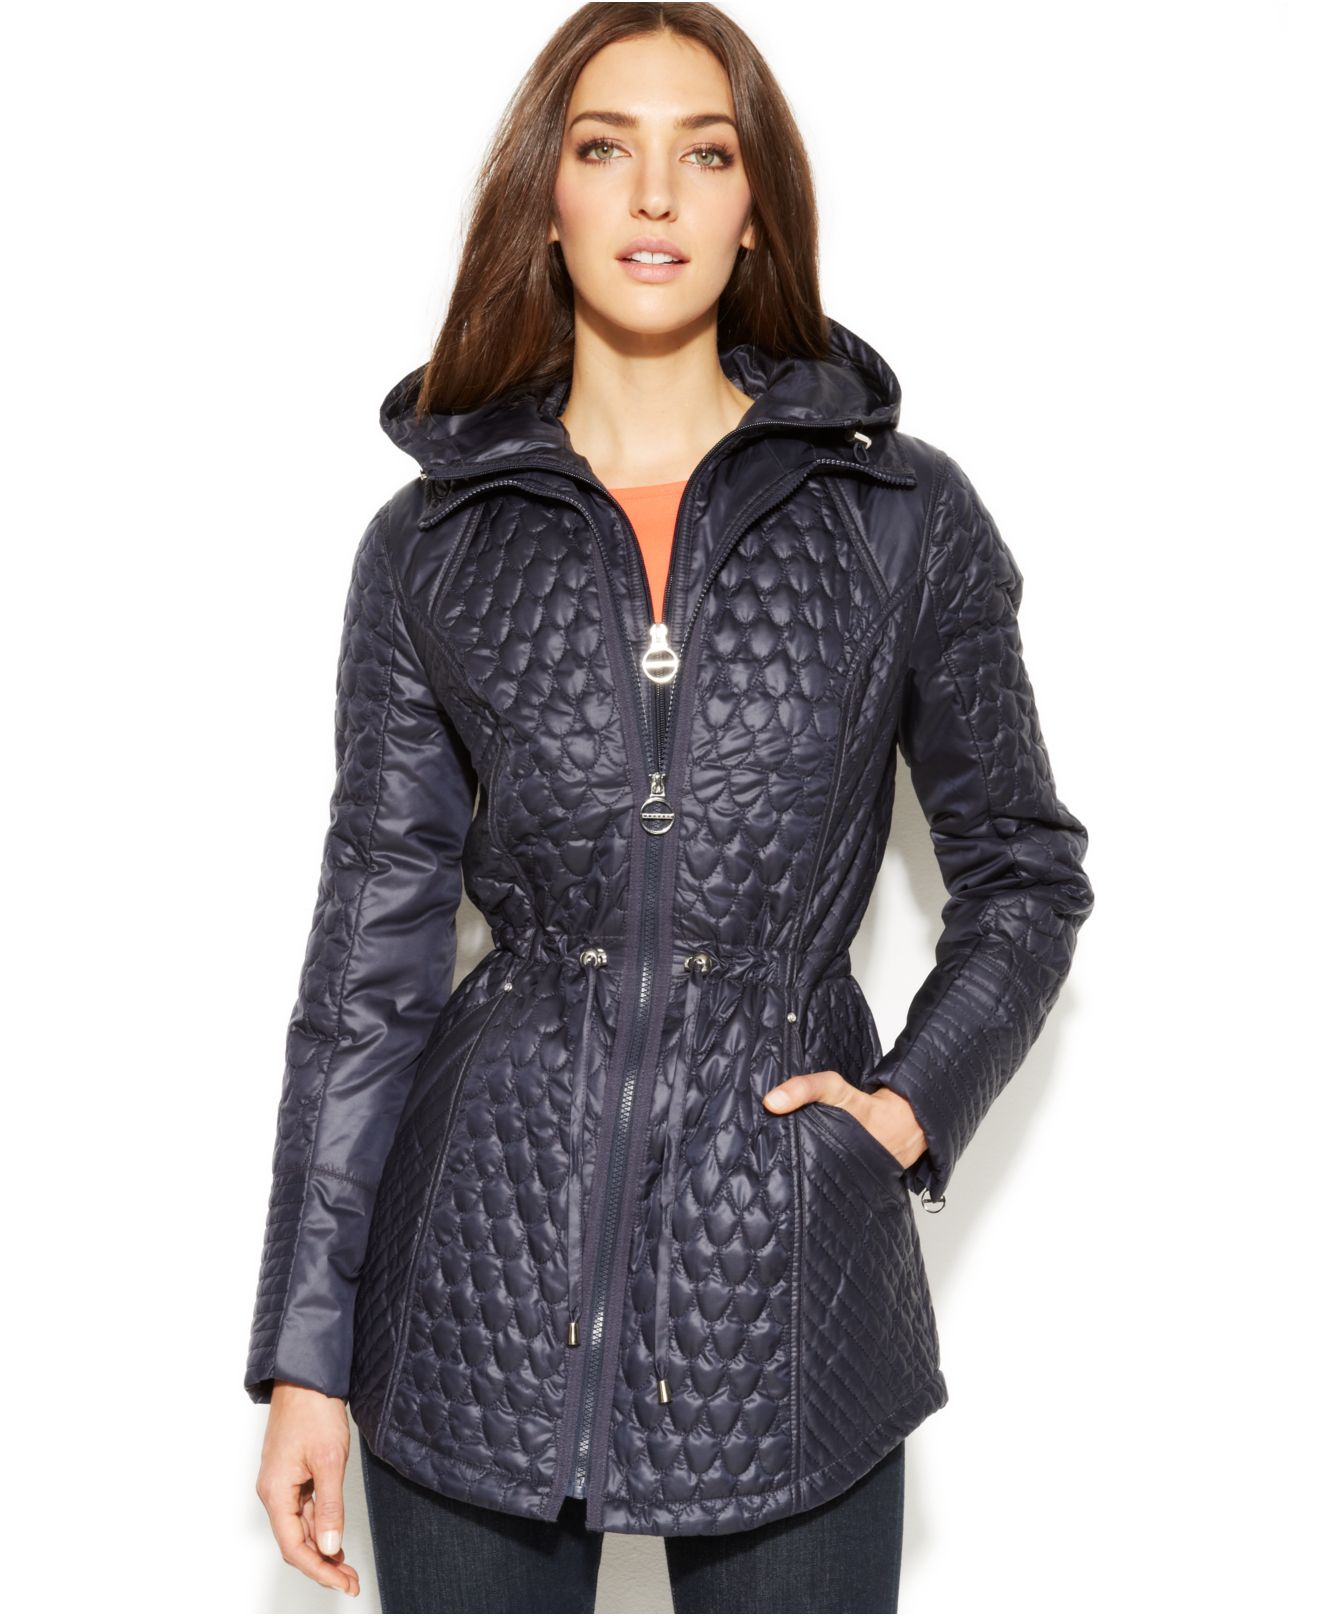 Laundry by shelli segal quilted jacket with hood